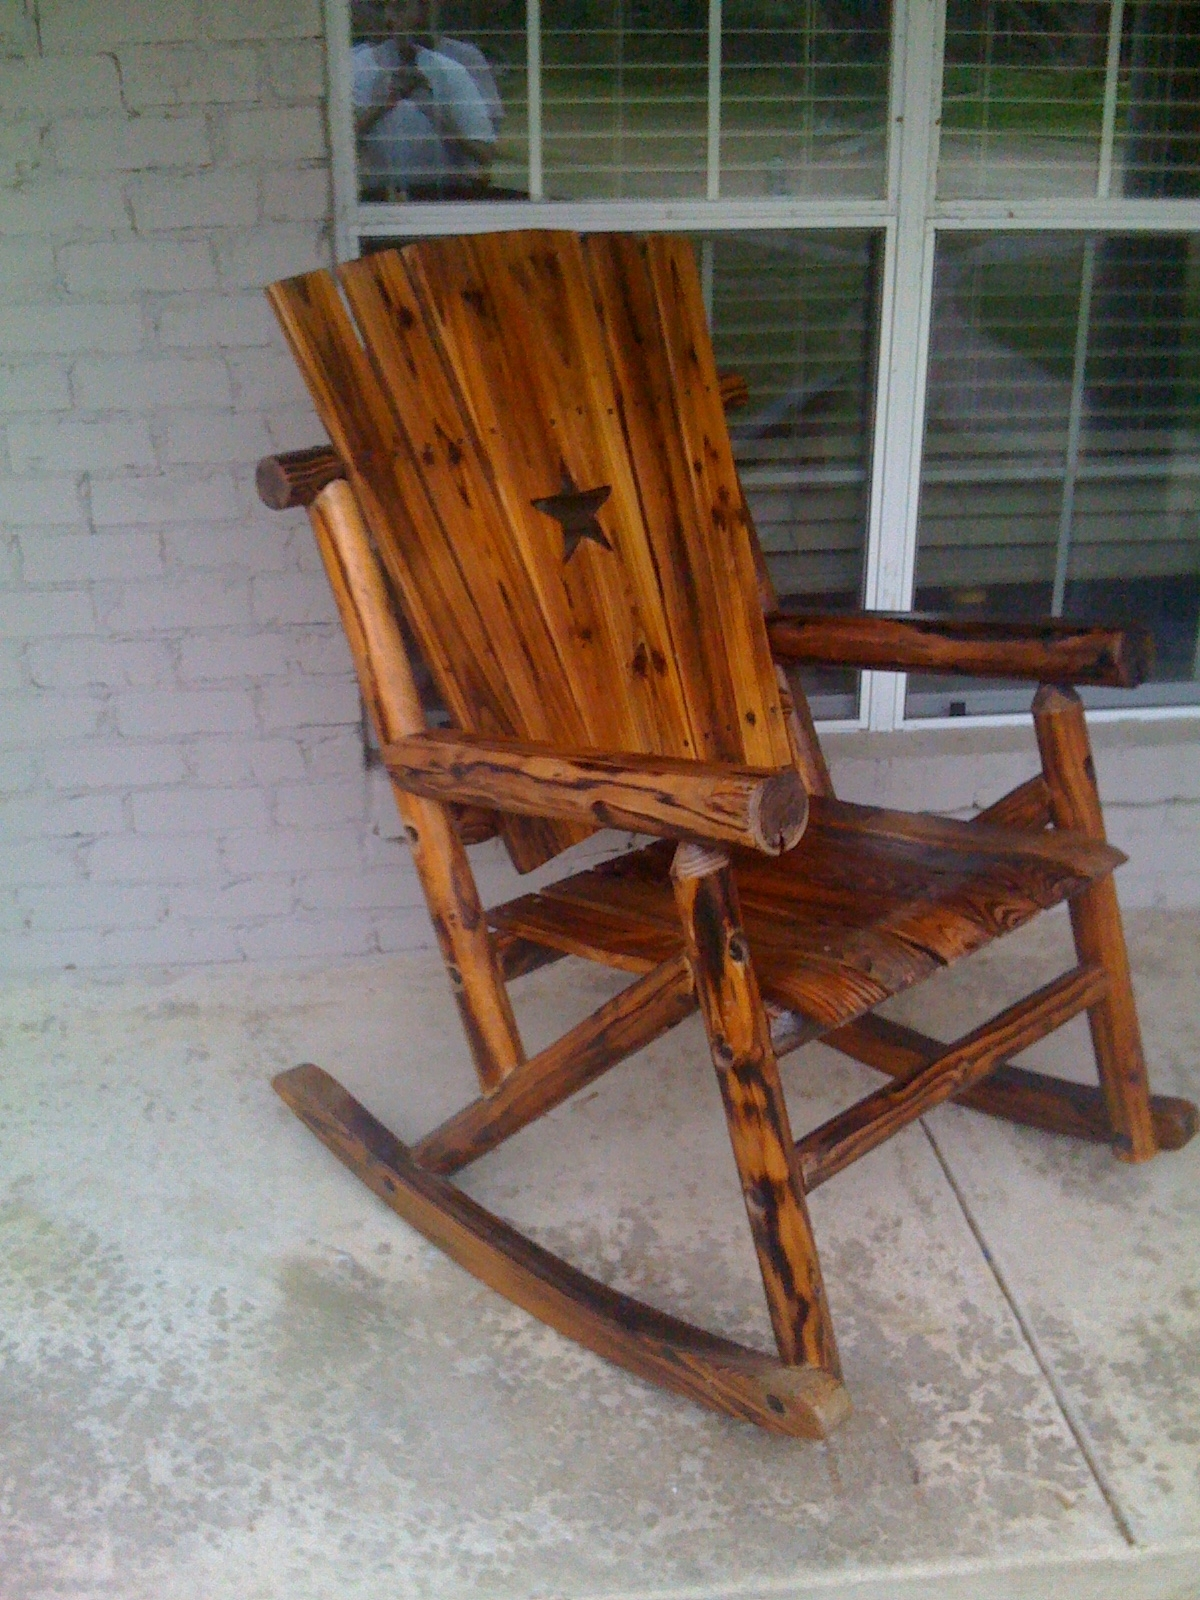 Retro Outdoor Rocking Chairs Inside 2018 Patio : Wood Patio Table Unique Ideas Rustic Image Tables Of (View 13 of 20)